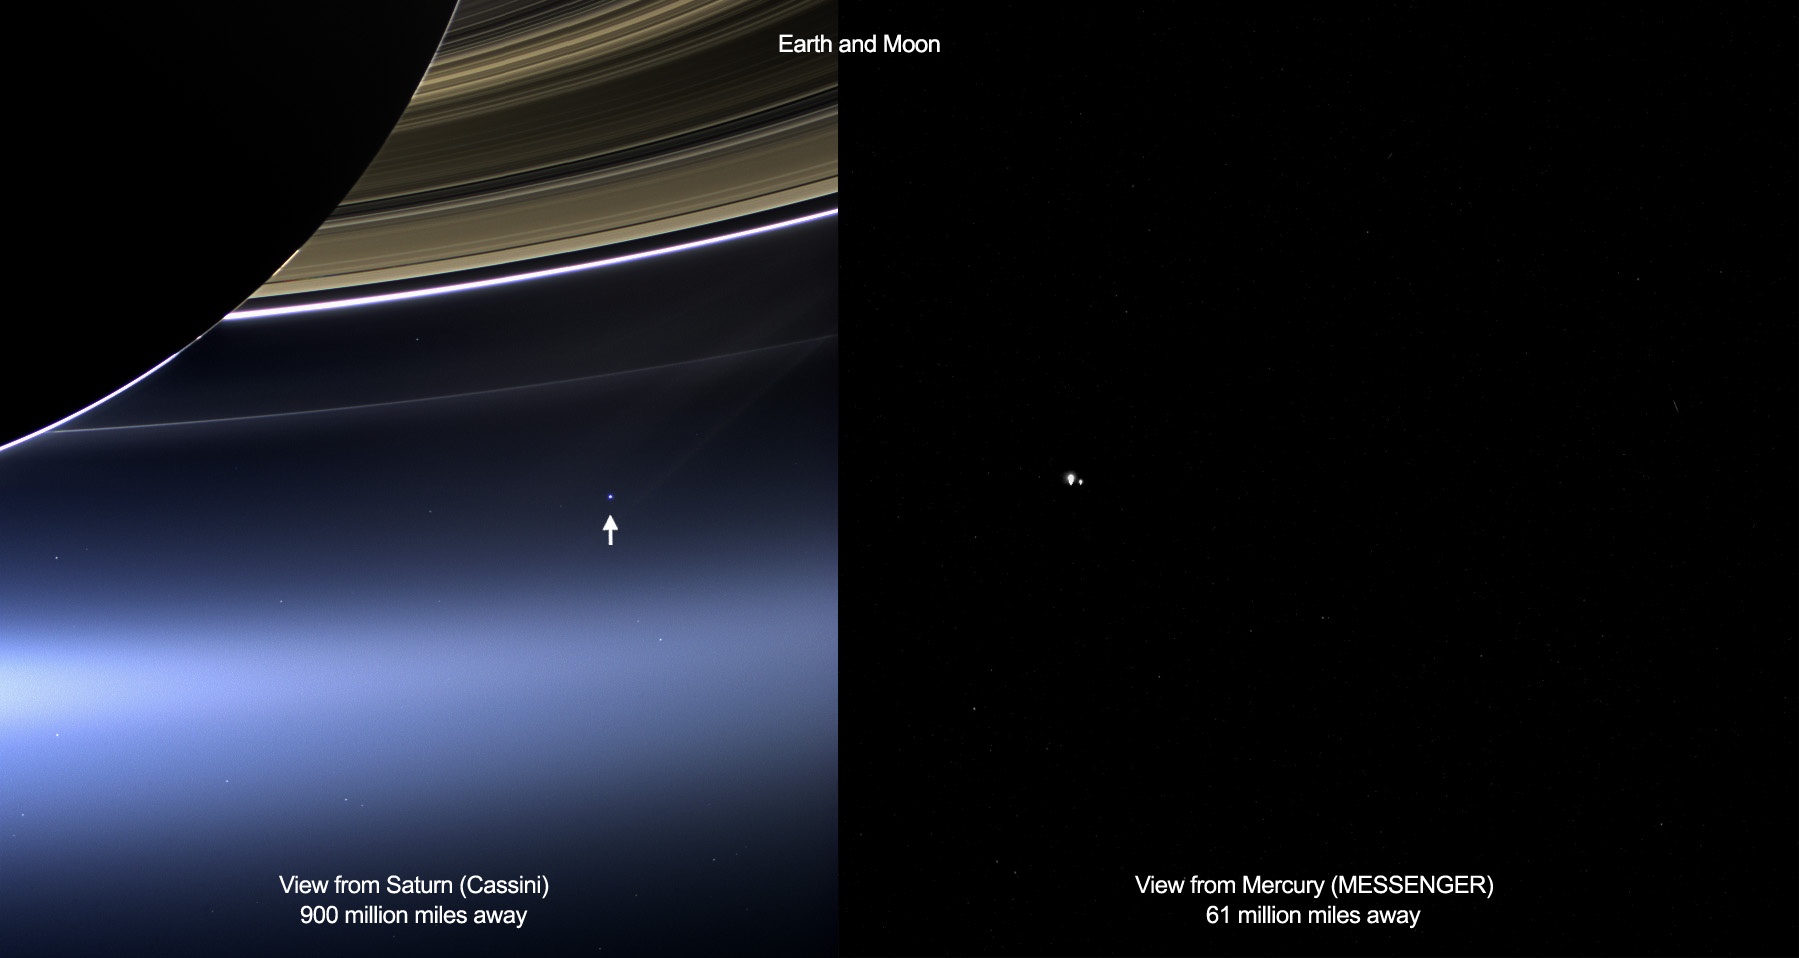 2013 July 23 - Two Views of Earth